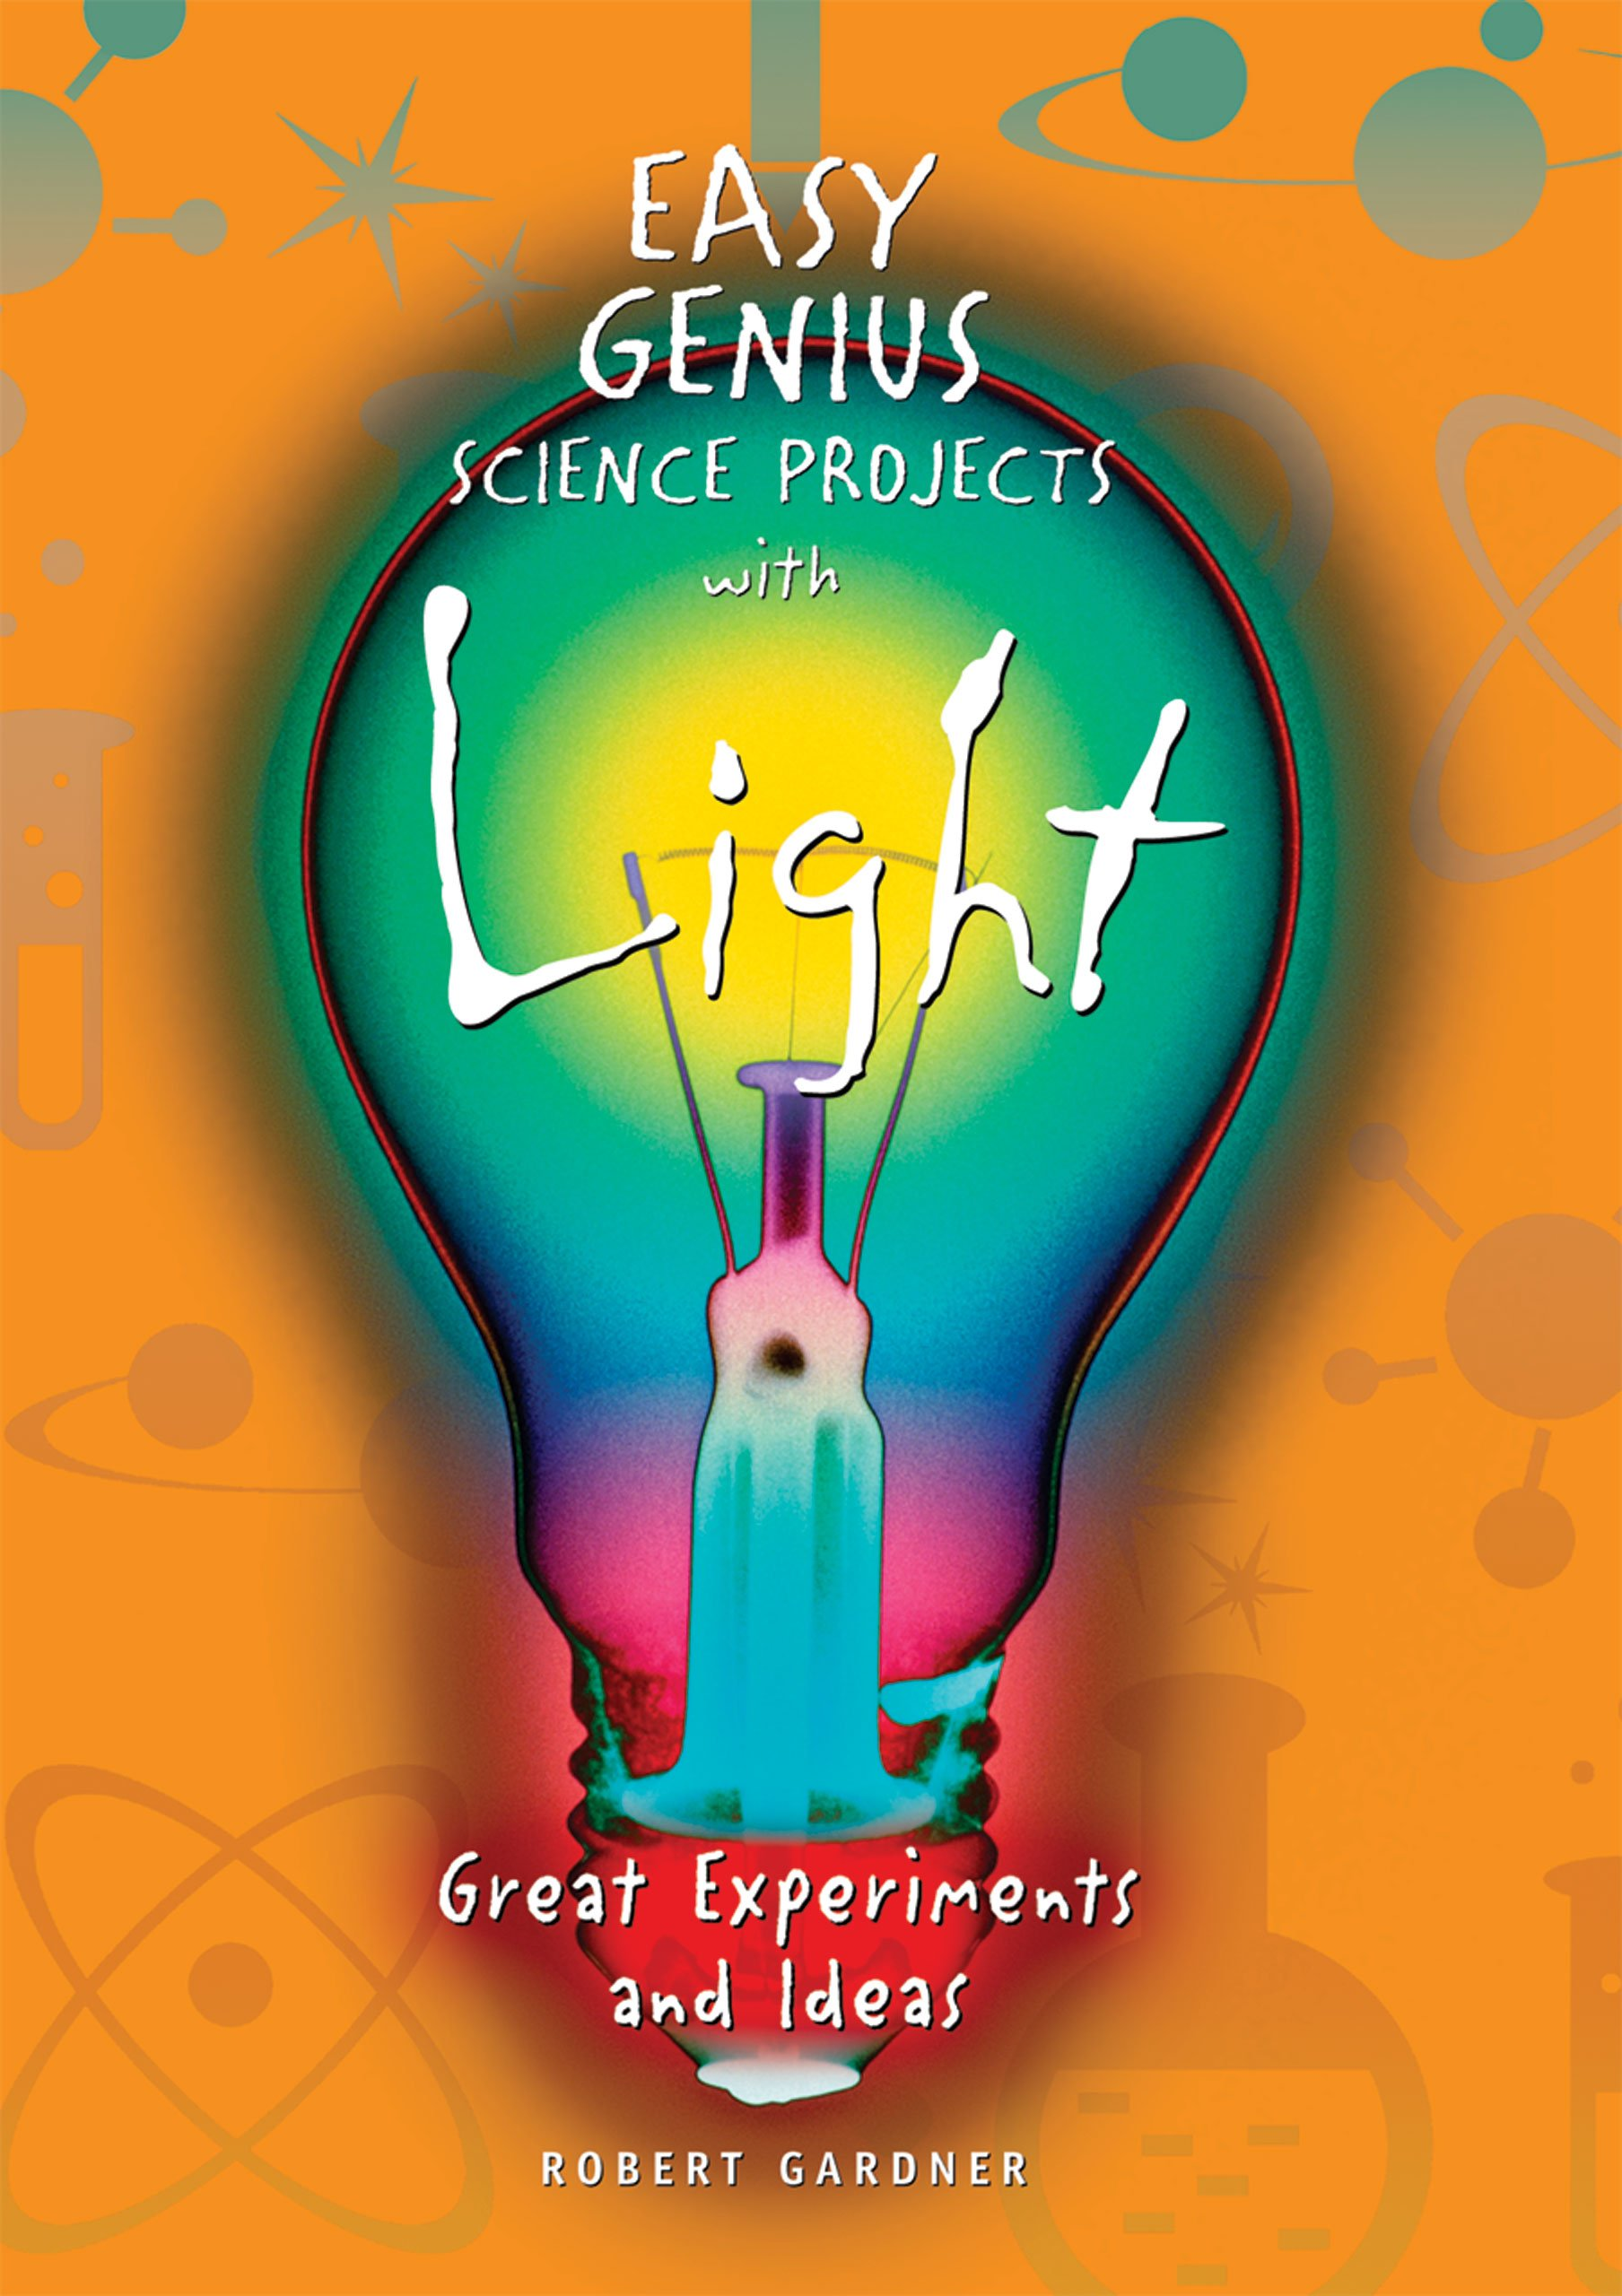 Ideas For Graphic Design Projects graphic design projects for hot cafe Easy Genius Science Projects With Light Great Experiments And Ideas Robert Gardner 9780766029262 Amazoncom Books